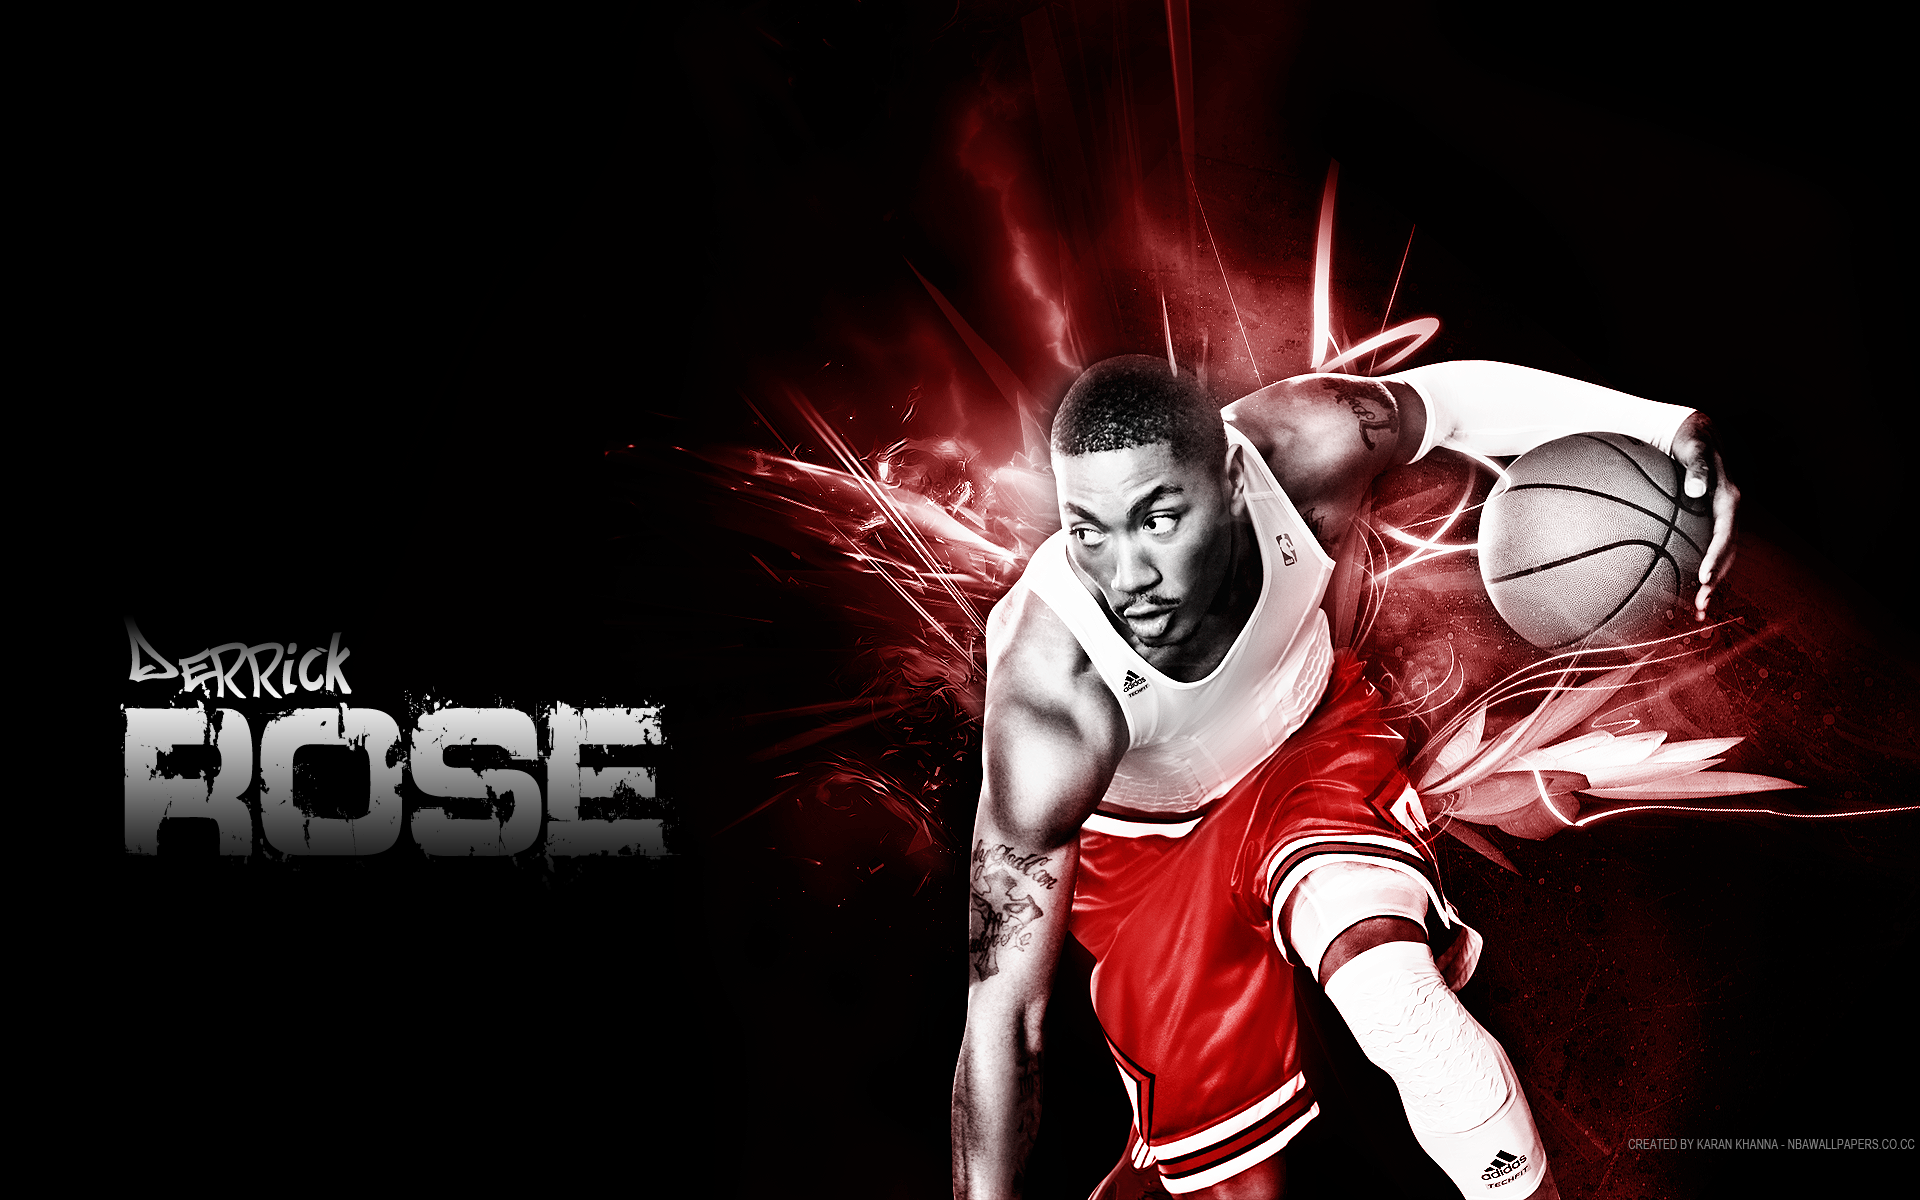 Description Derrick Rose Wallpaper HD is a hi res Wallpaper for pc 1920x1200